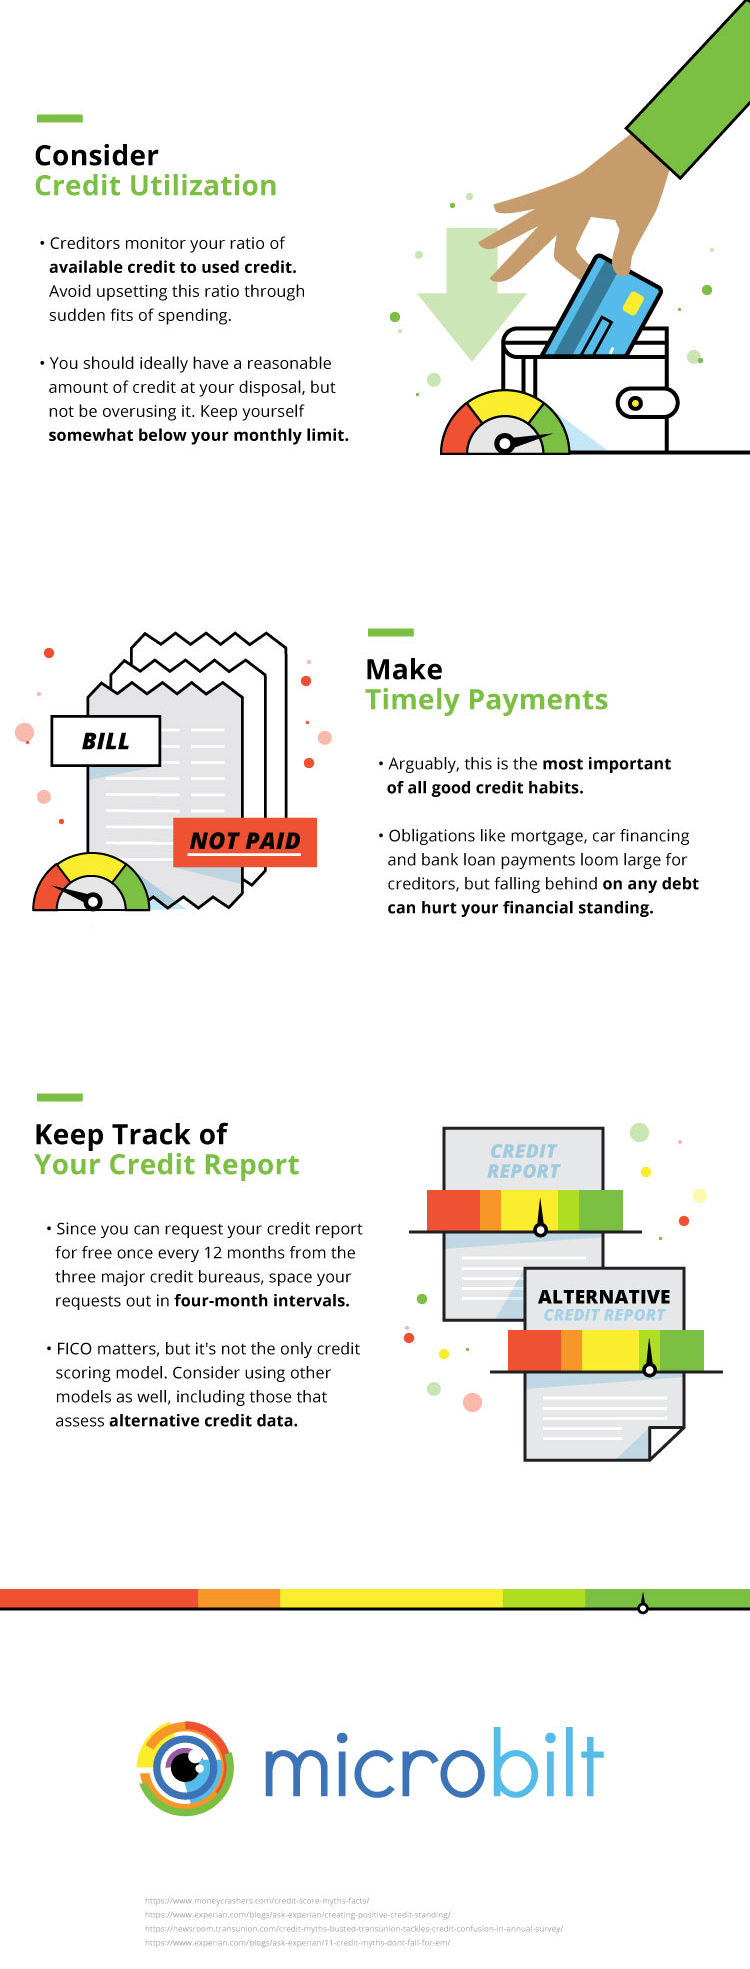 Infographic: 3 Behaviors To Keep Credit in Good Standing